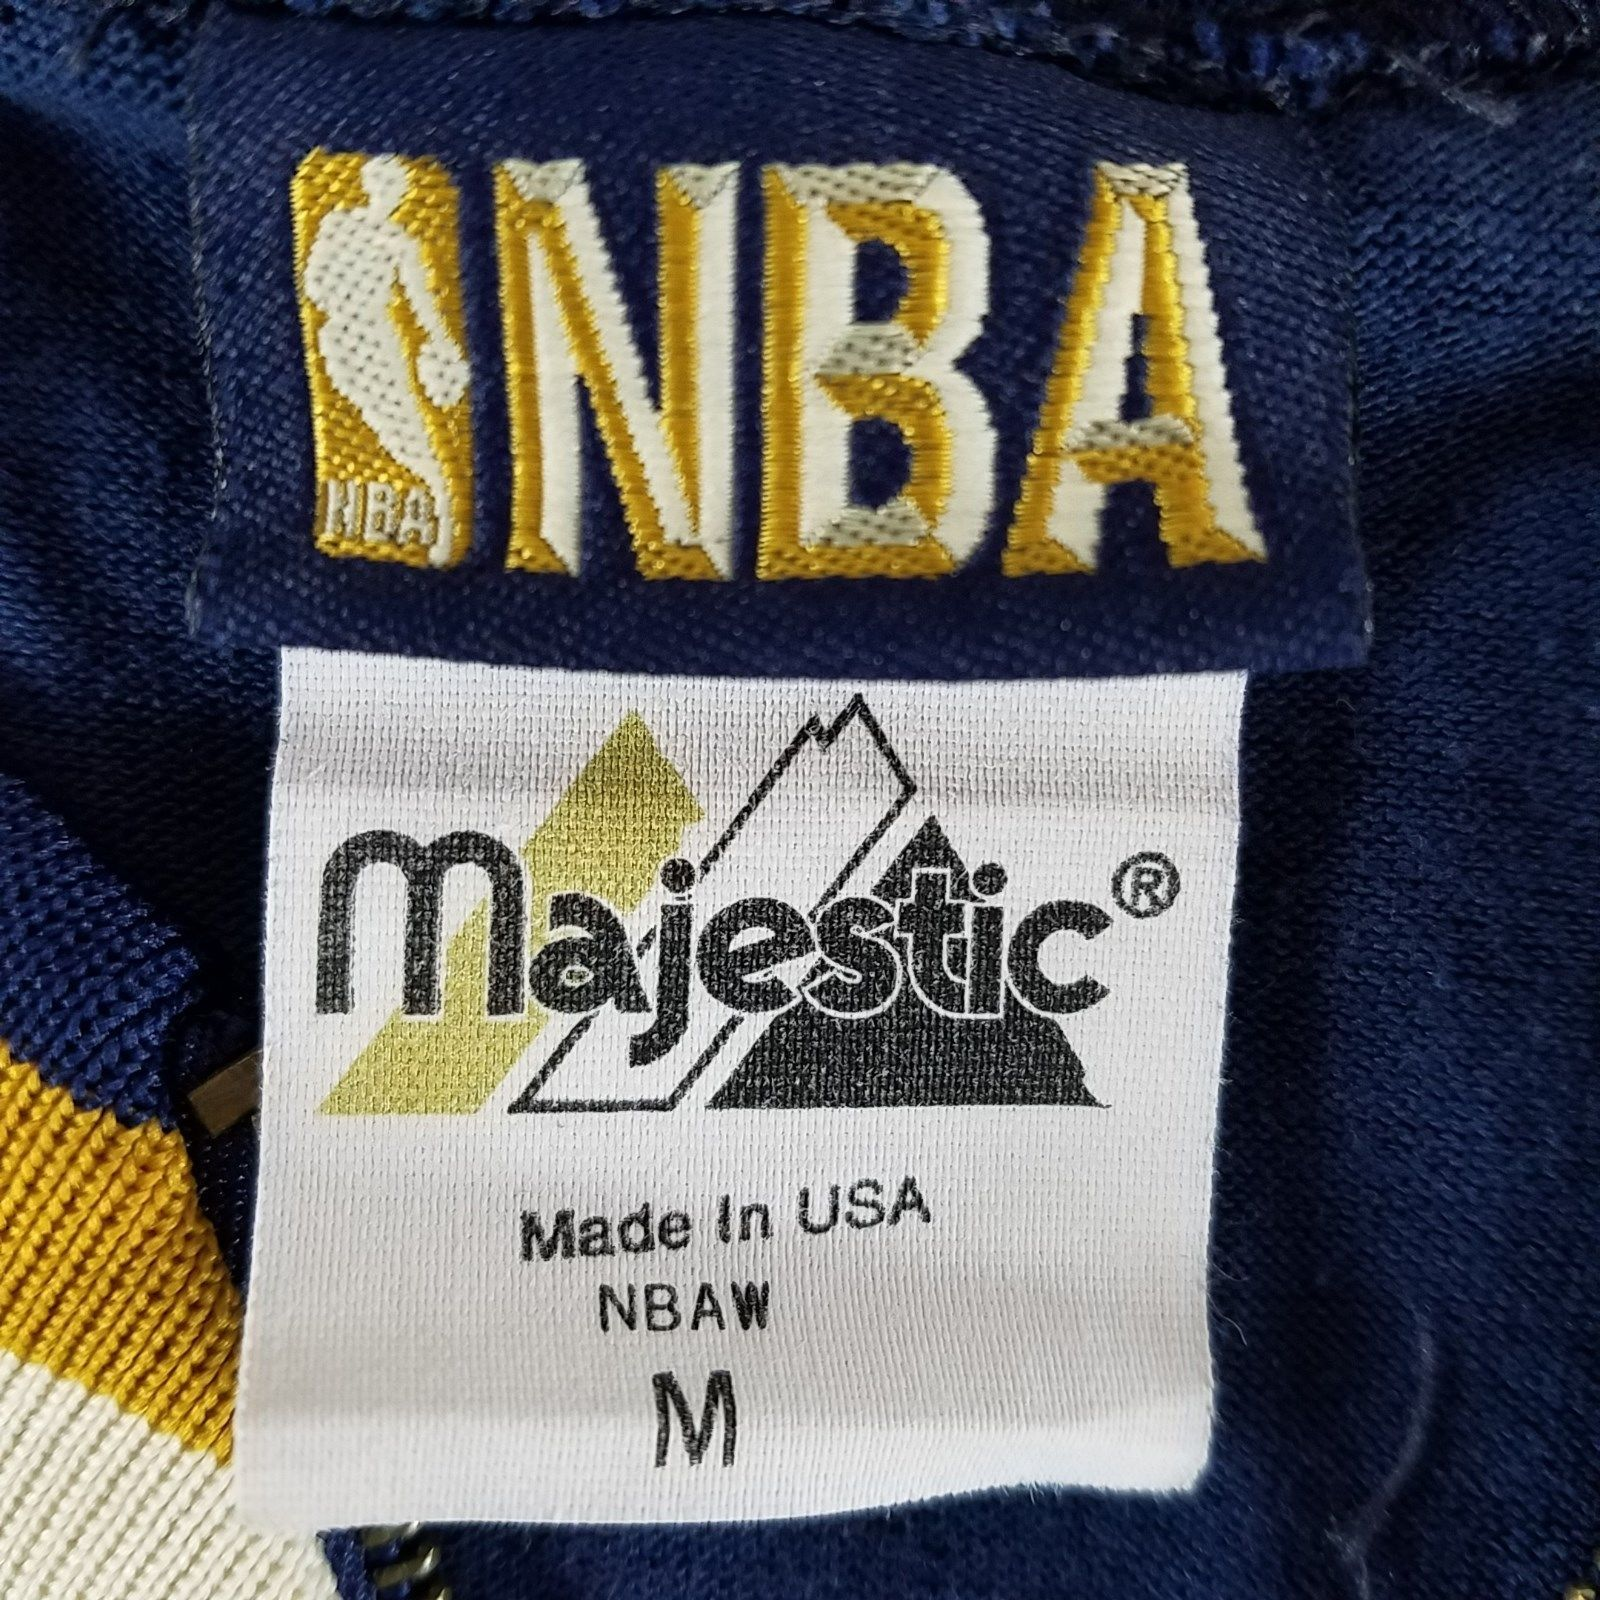 Vtg NBA Majestic M Blue Gold Warm Up Jersey Shirt 50th Anniversary 96-97